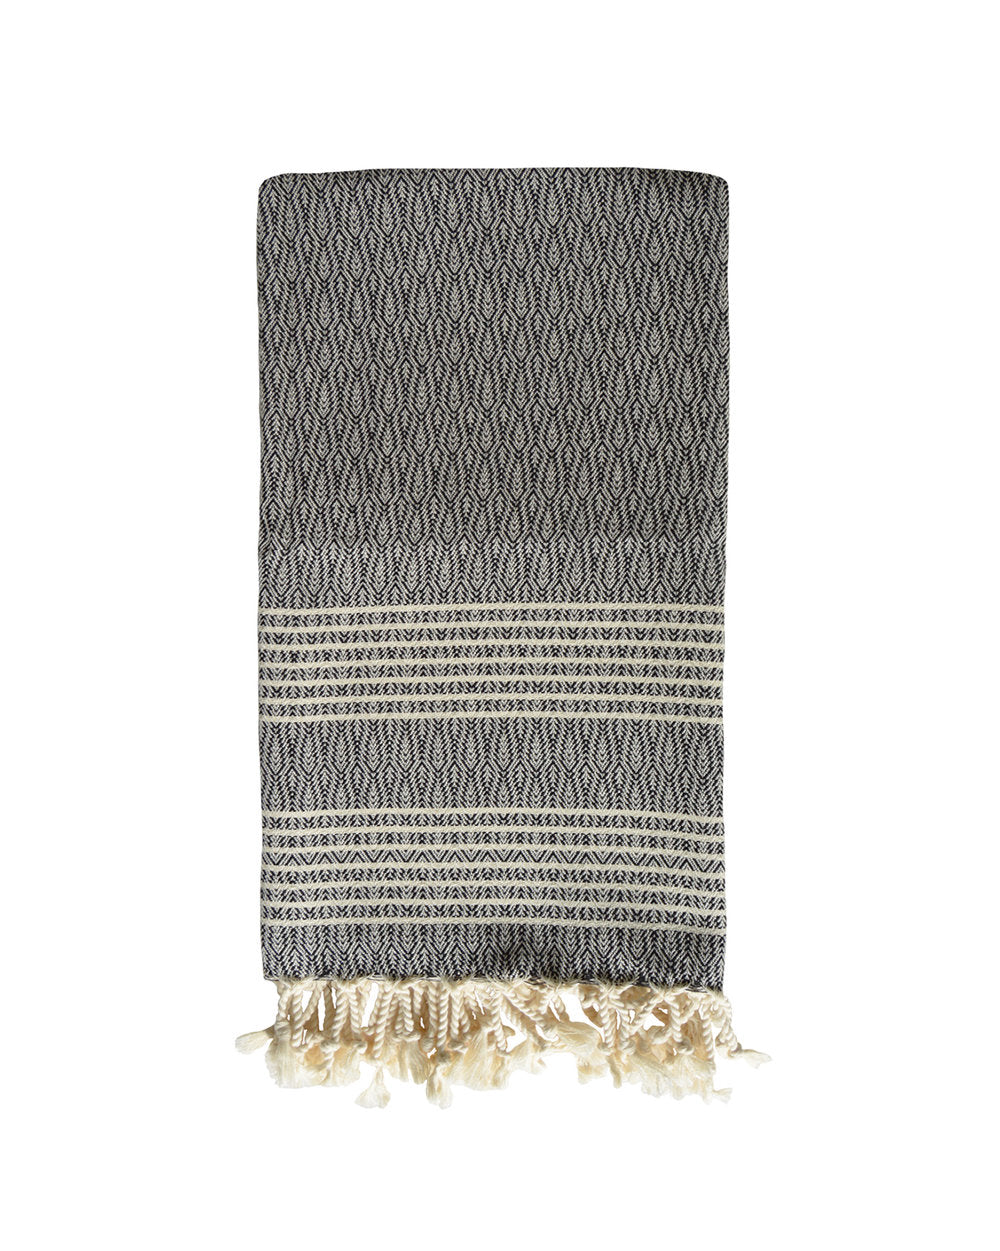 LIVADIA TEXTURED TOWEL + THROW - BLACK